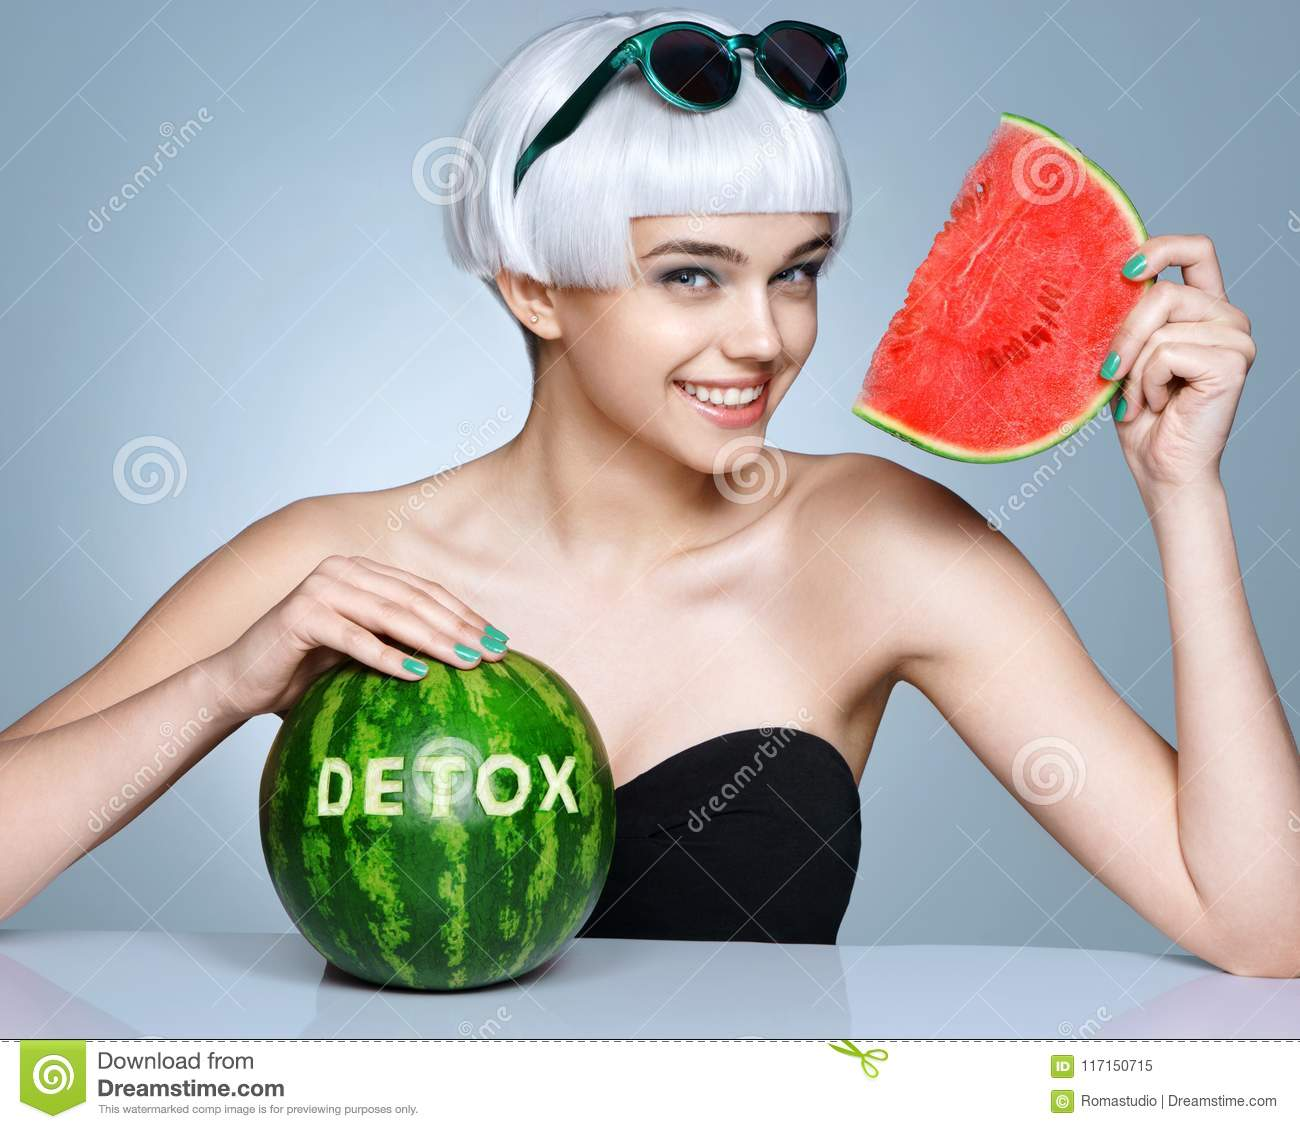 Happy girl with ripe watermelon on blue background.